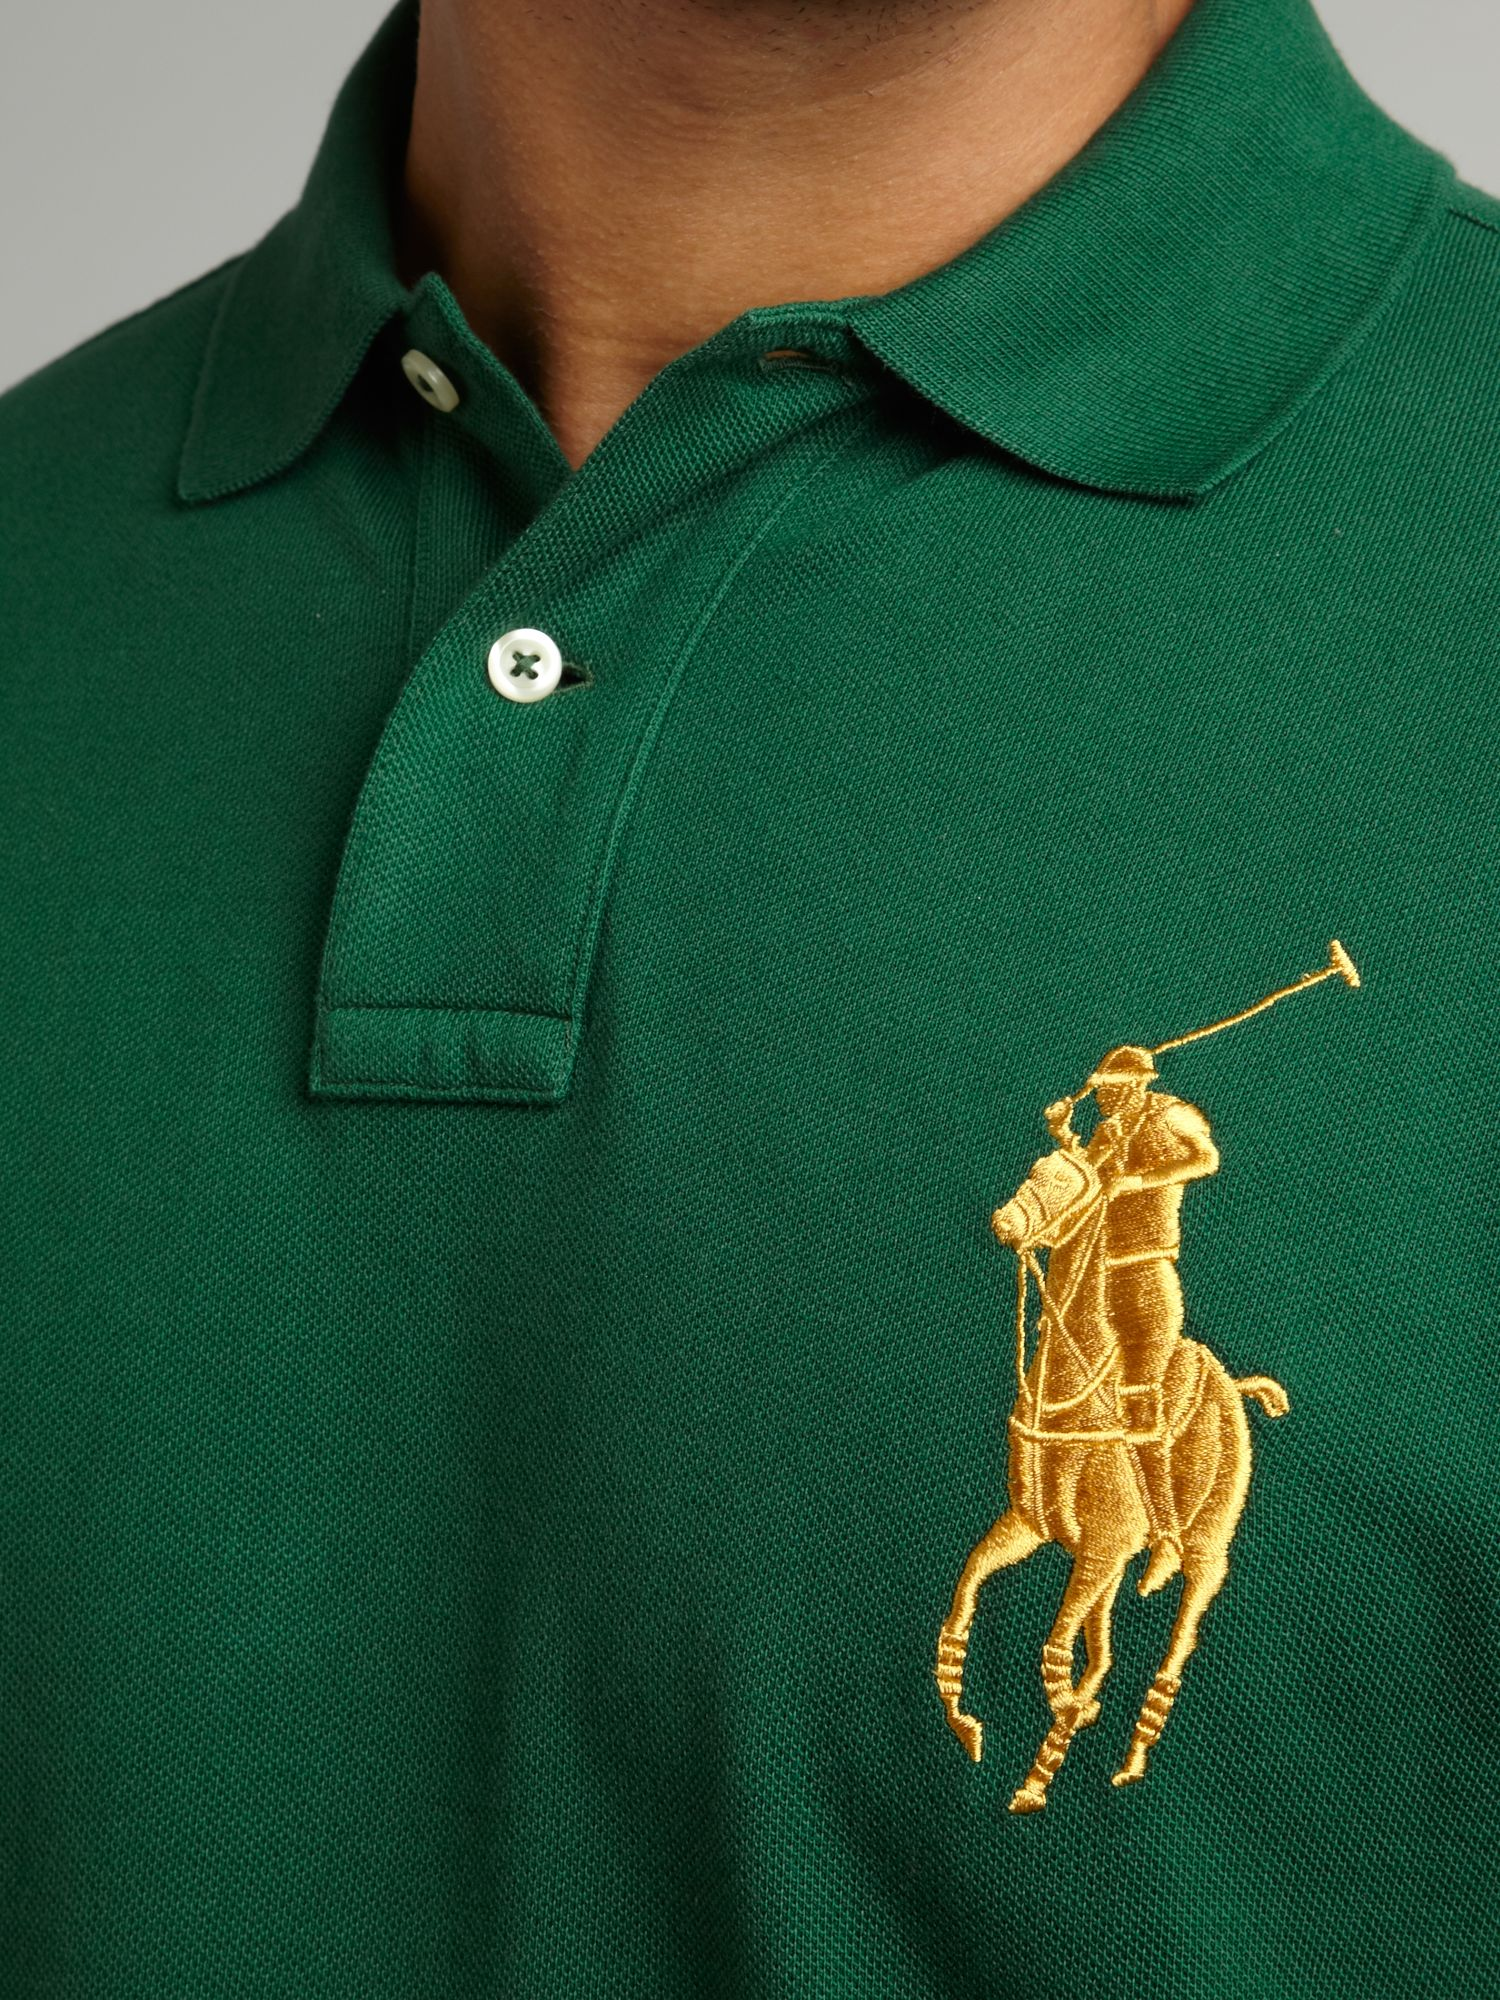 Ralph Lauren Green White Big Pony Polo Men